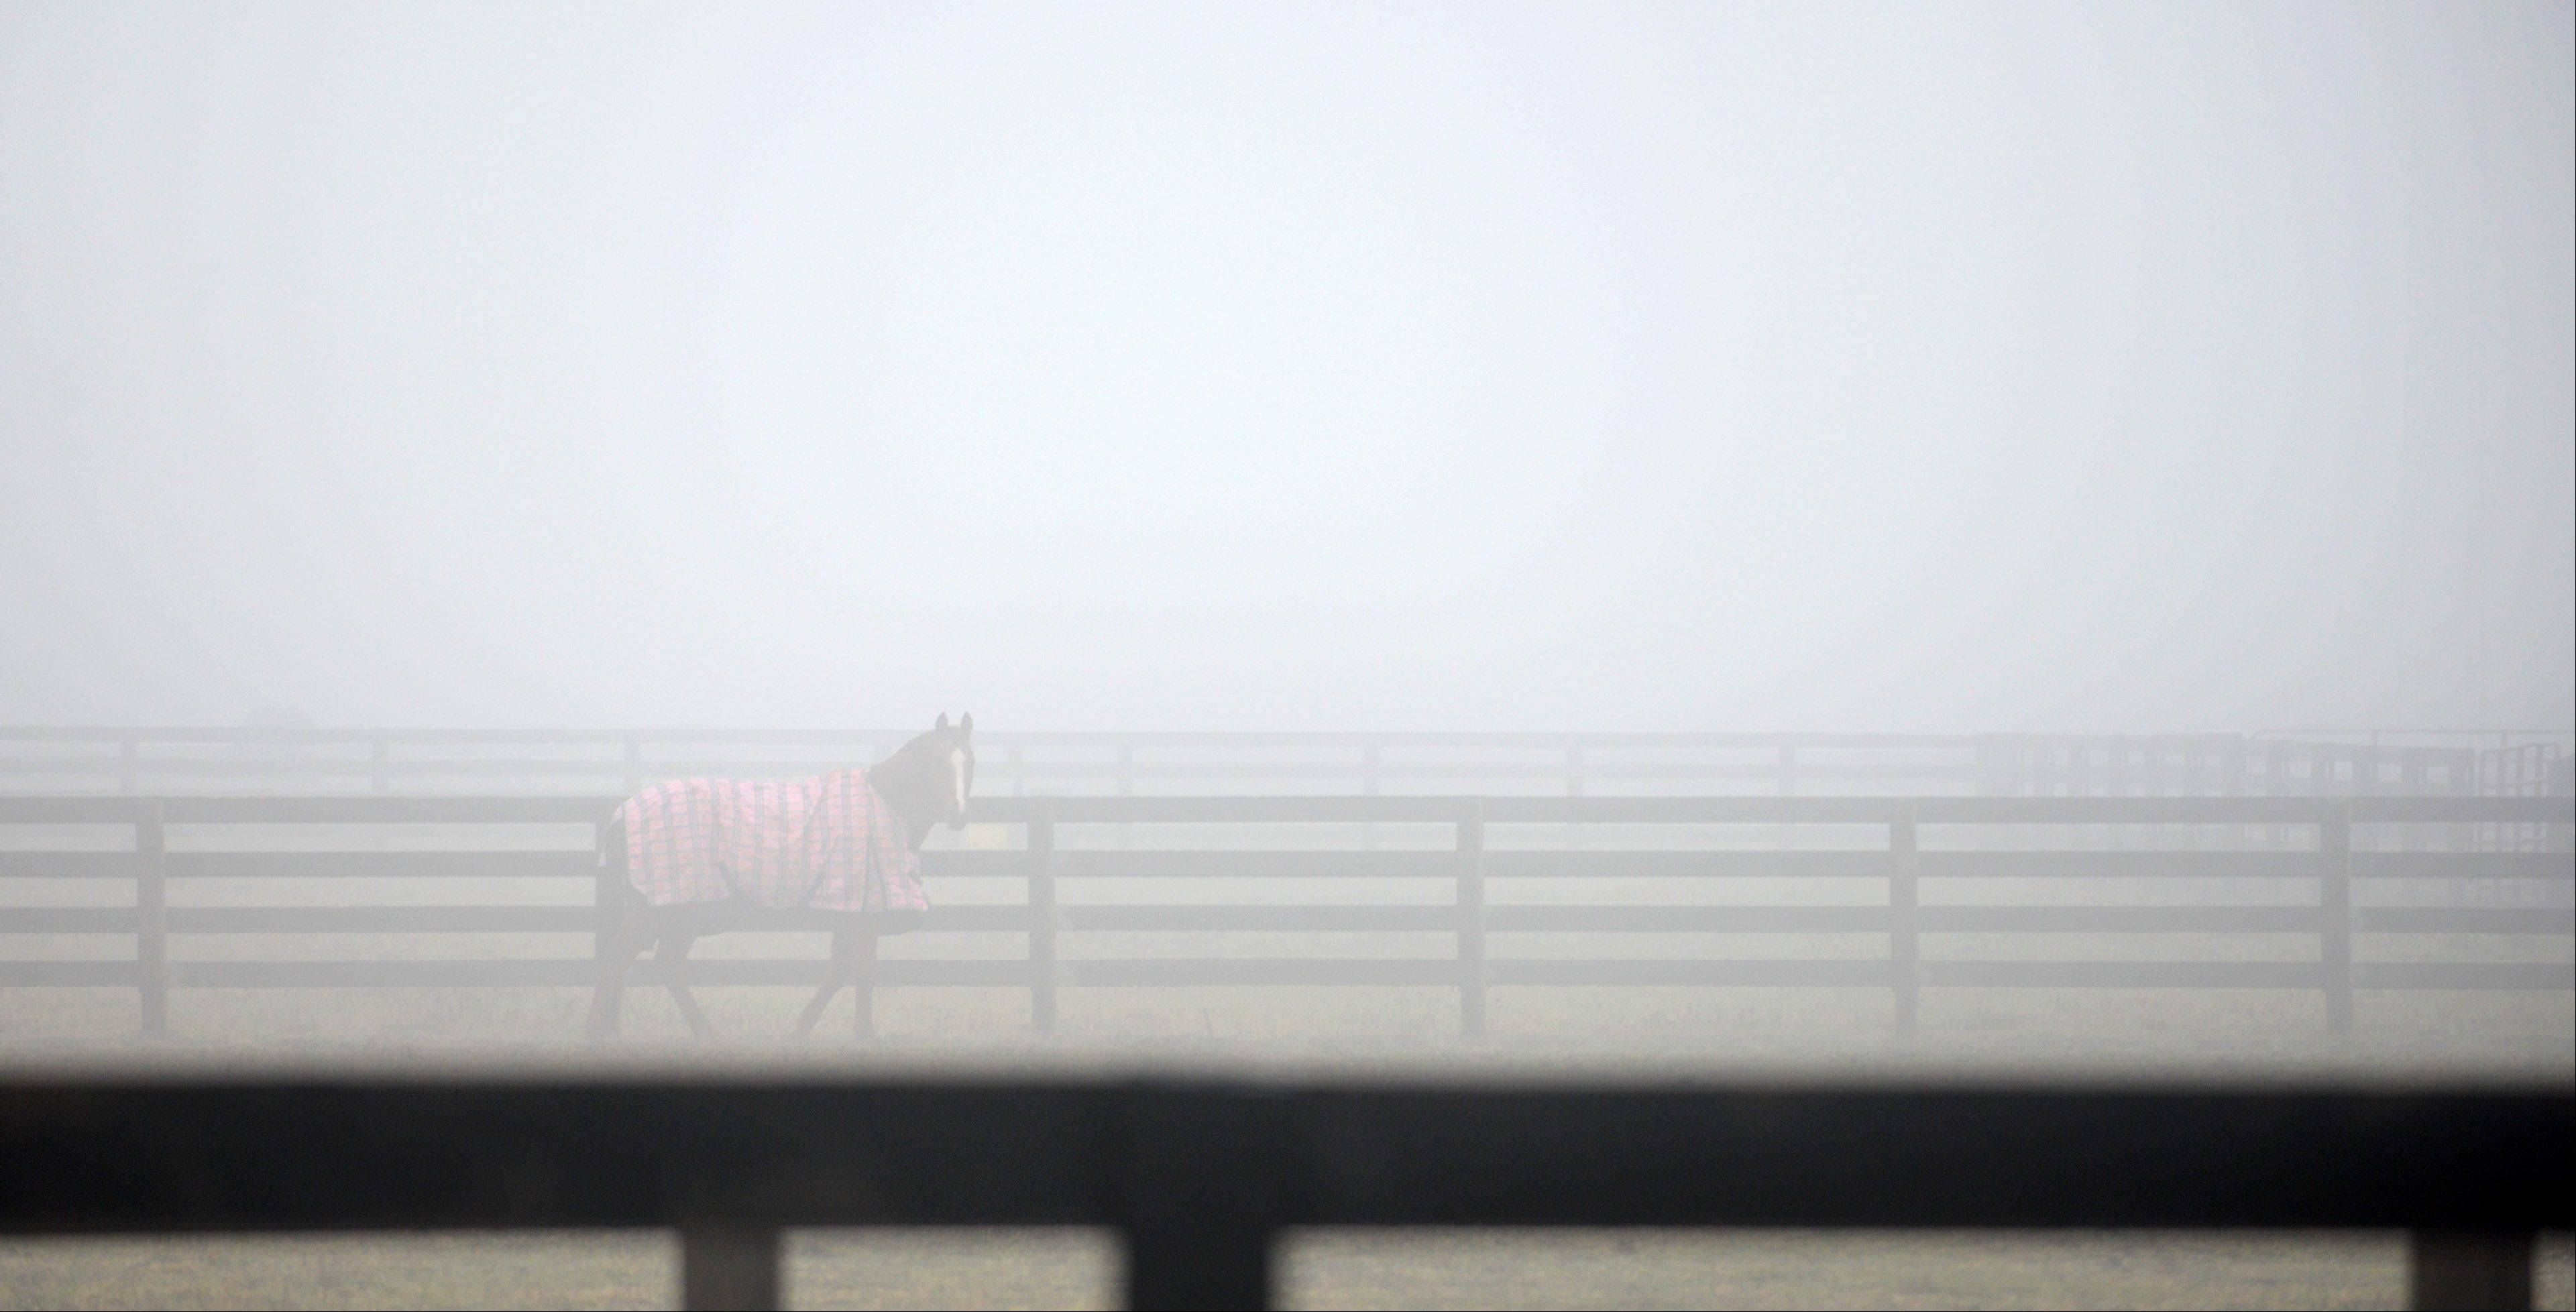 A horse walks along a fence line in a fog-shrouded field in rural Elgin Wednesday, where temperatures hit the mid-50s. Thursday�s forecast calls for clearer skies but high temperatures about 20 degrees cooler, according to AccuWeather.